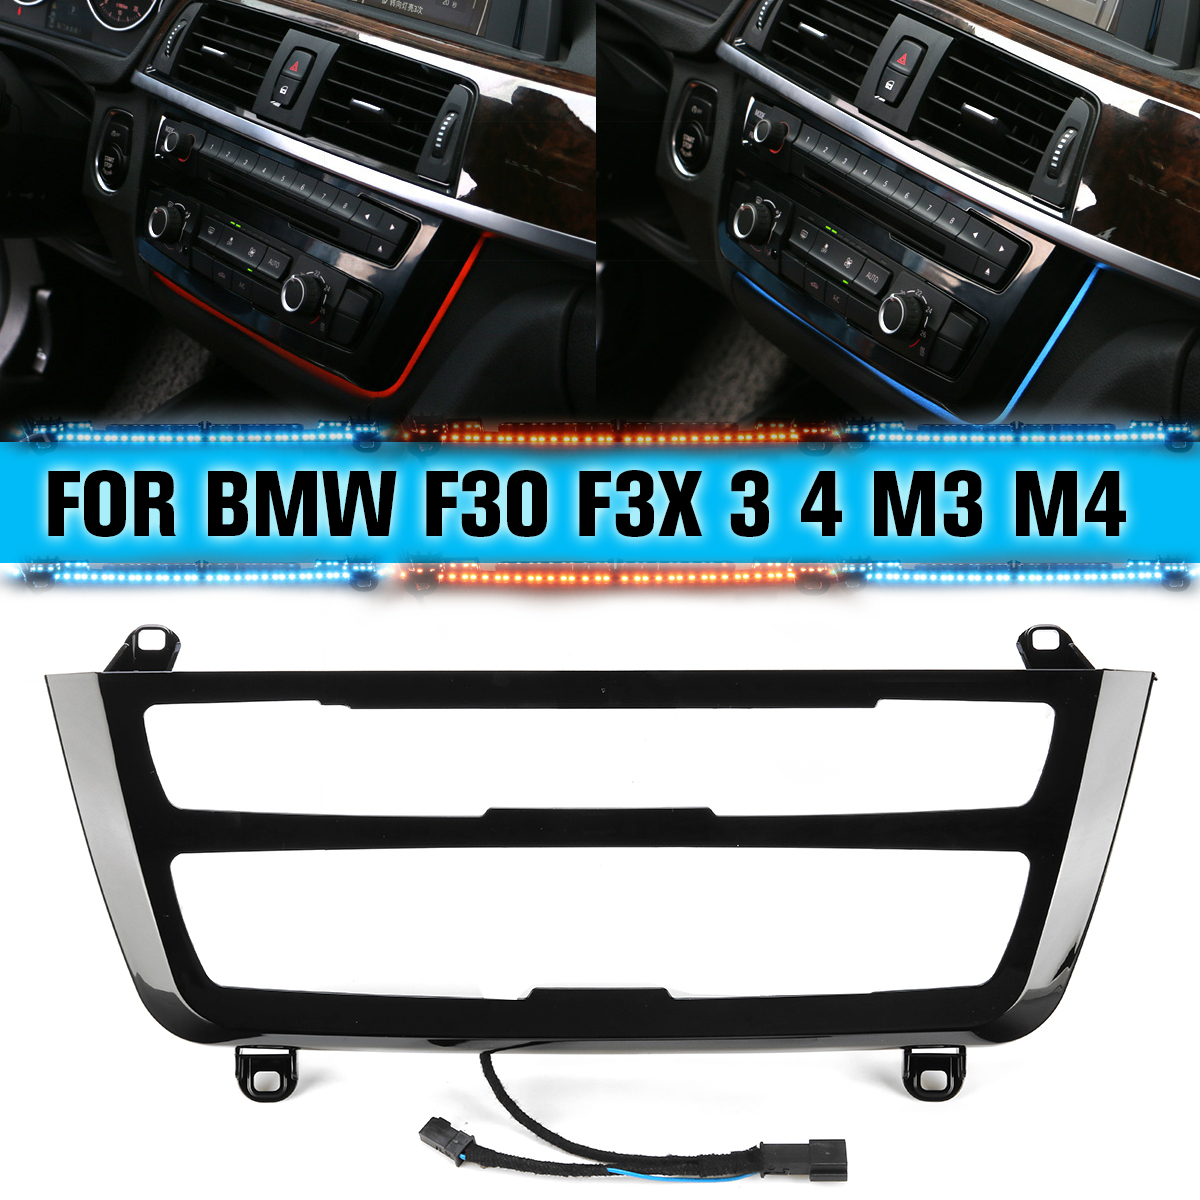 For BMW 3 & 4 Series F30 M3 M4 LCI  Radio Trim LED Dashboard Center Console AC Panel Light Blue Orange 2 Color Atmosphere Light